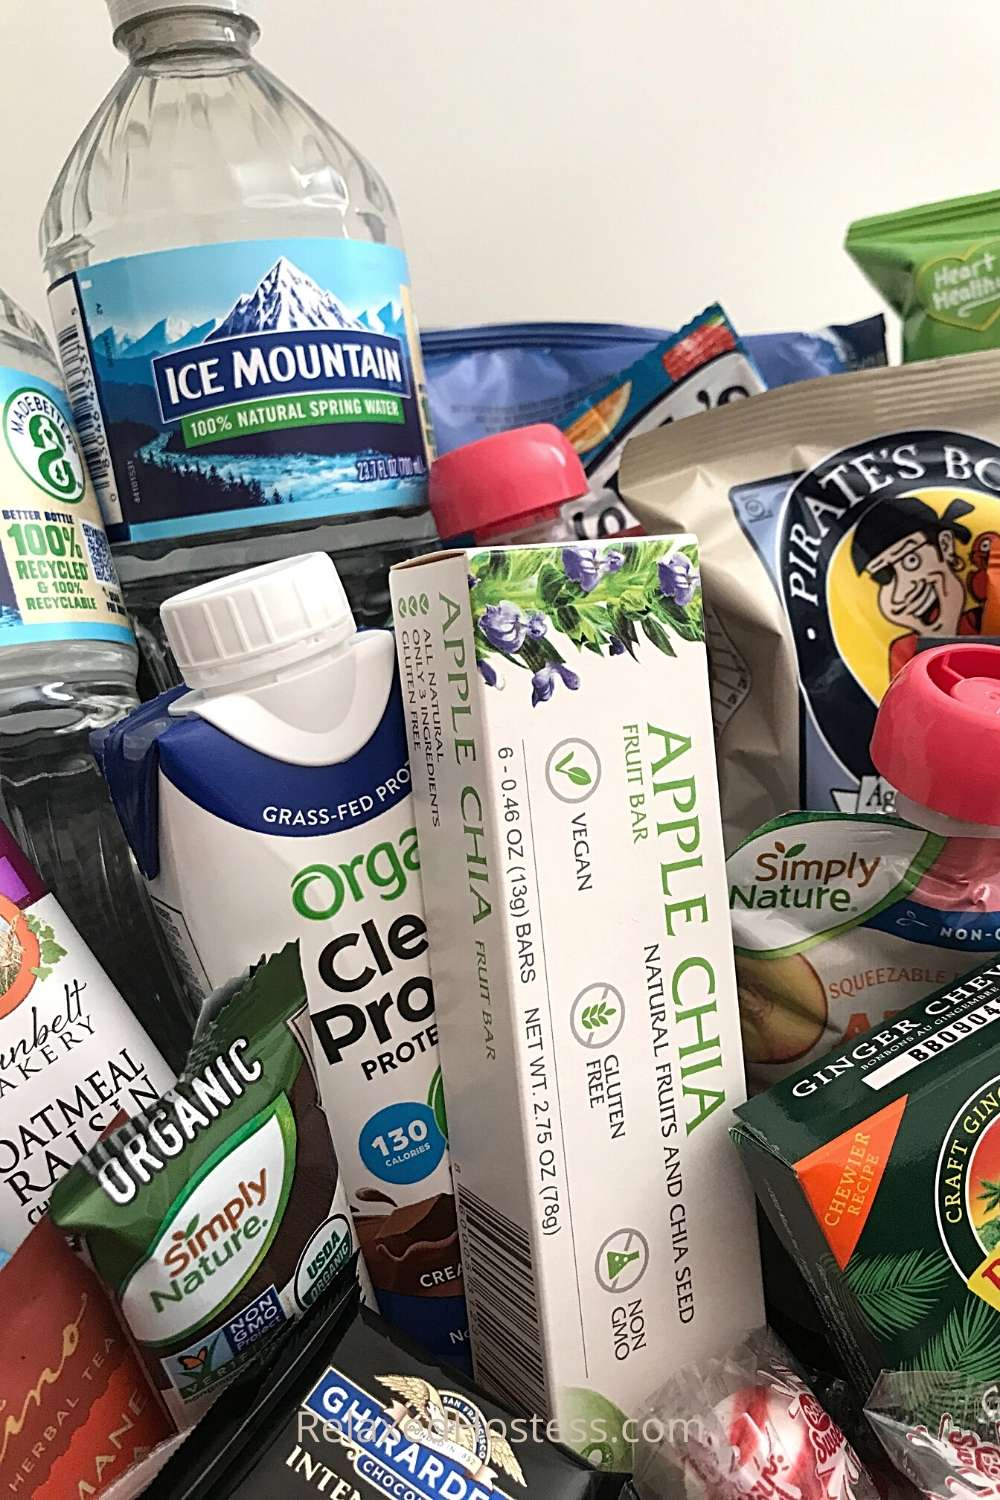 Snack ideas for guestroom: water bottles, fruit bars, protein shake, granola bars, chocolate, fruit snacks, ginger candy,  peppermint, chips, popcorn, apple sauce...